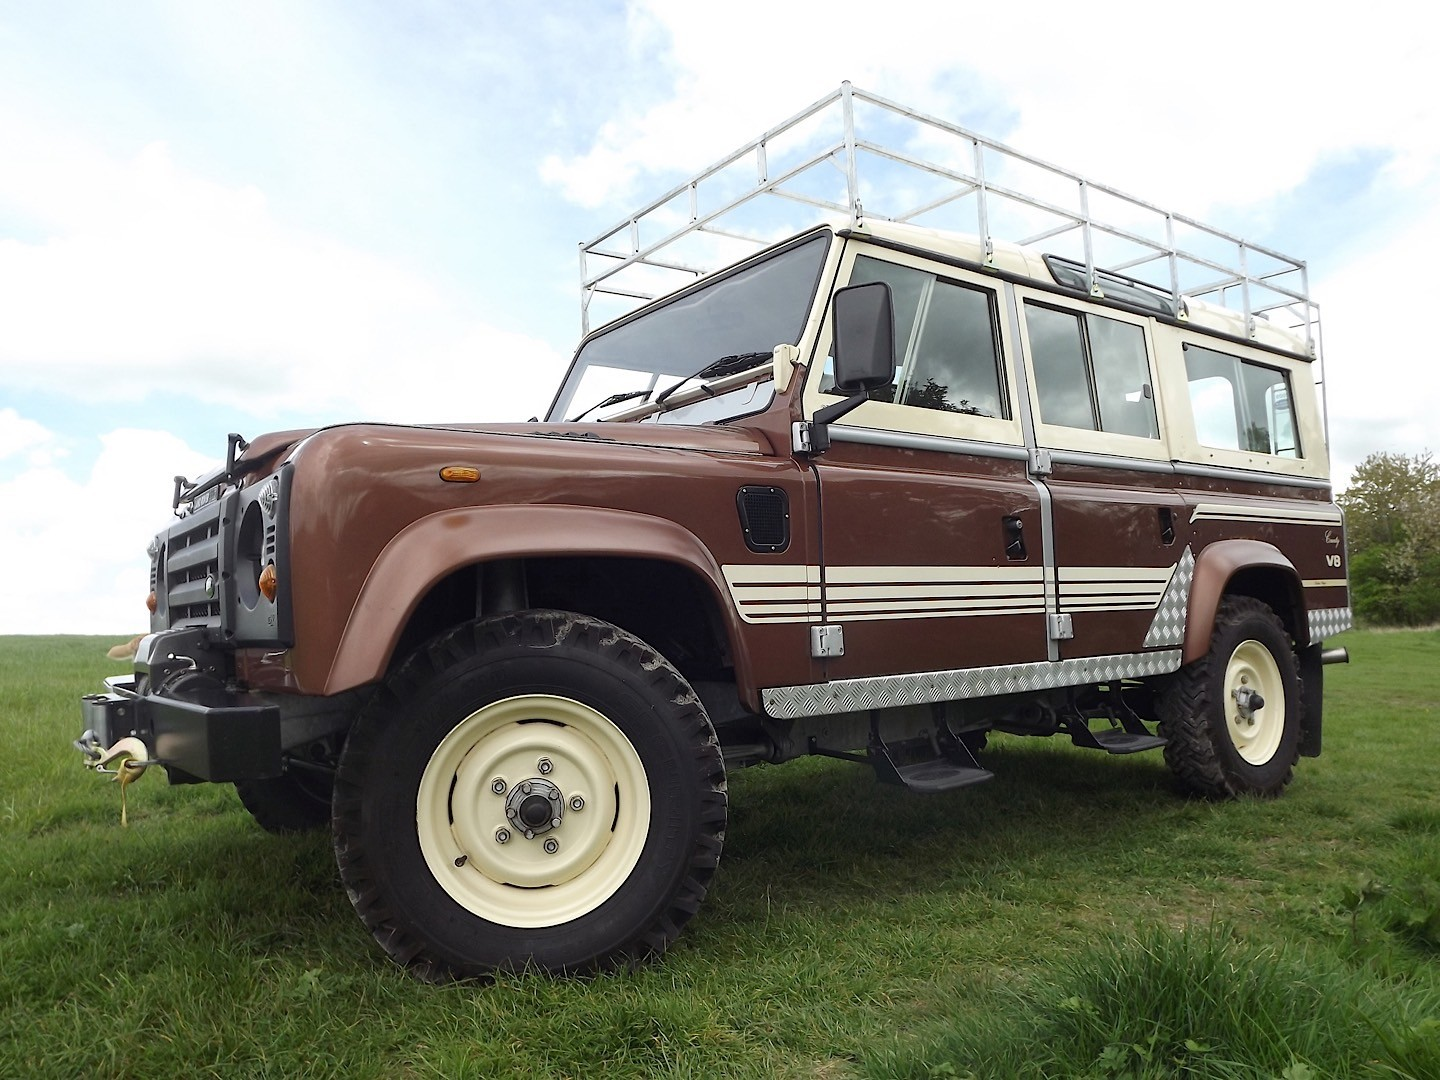 1983 land rover 110 county station wagon up for auction as the ultimate defender autoevolution. Black Bedroom Furniture Sets. Home Design Ideas